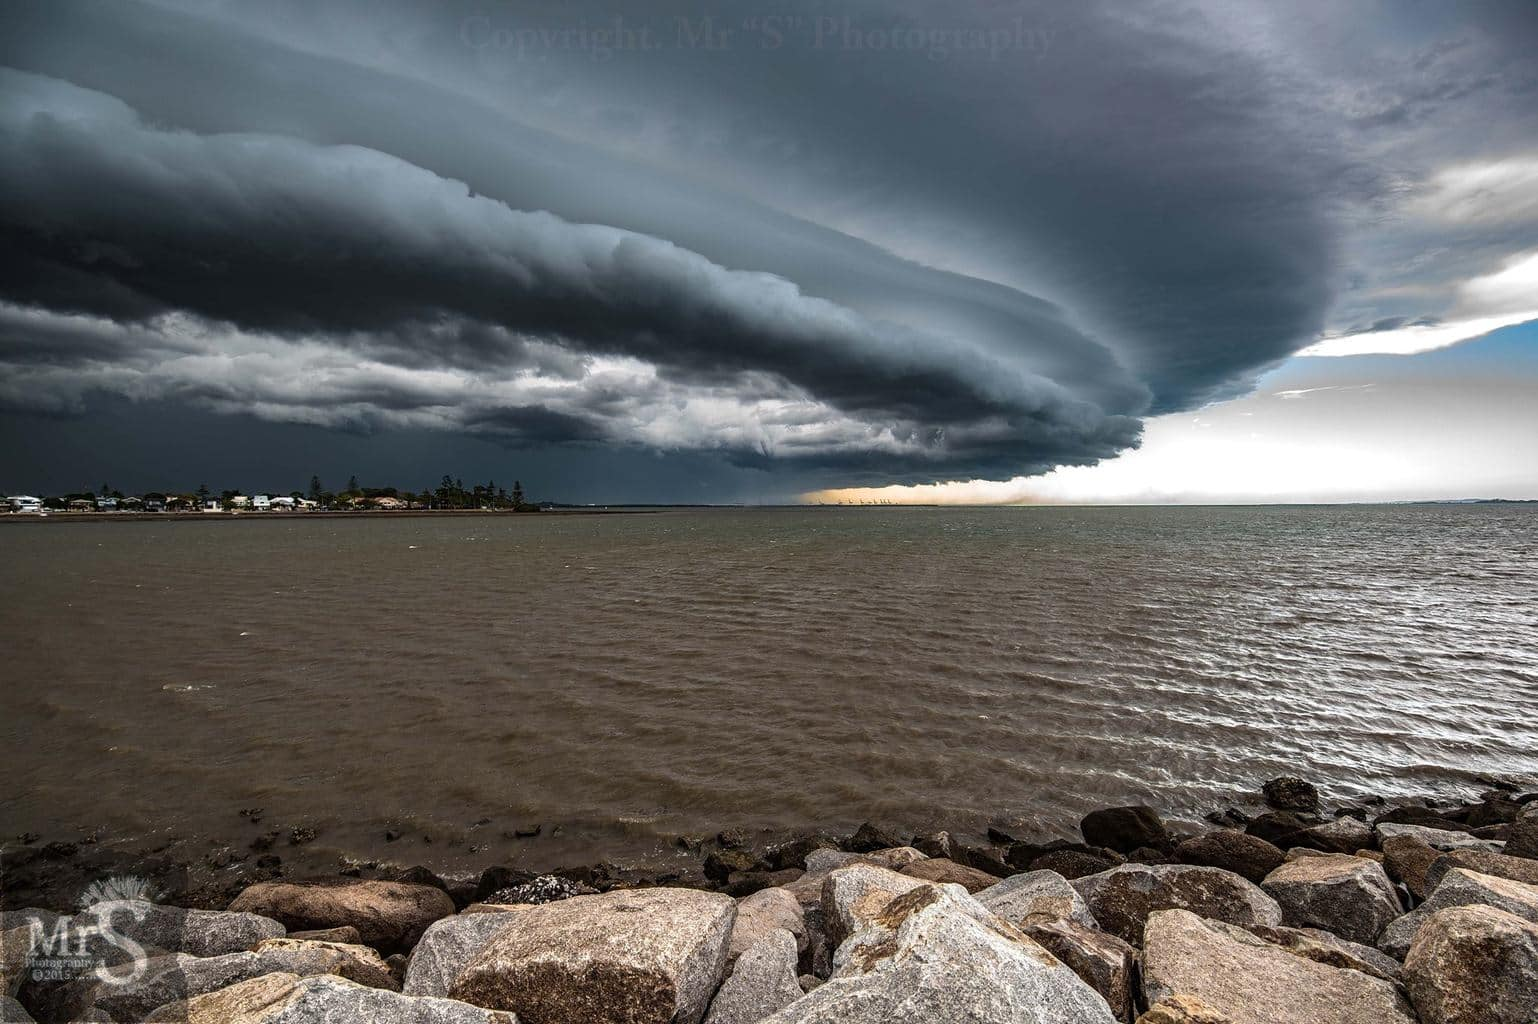 Under the Dome. A massive shelf approaches Manly Queensland on the 29th Sept 2015. The outflow was just mind blowing and you could see it sending sea water into the air hundreds of meters. Will post crop showing the gust on the water in comments.